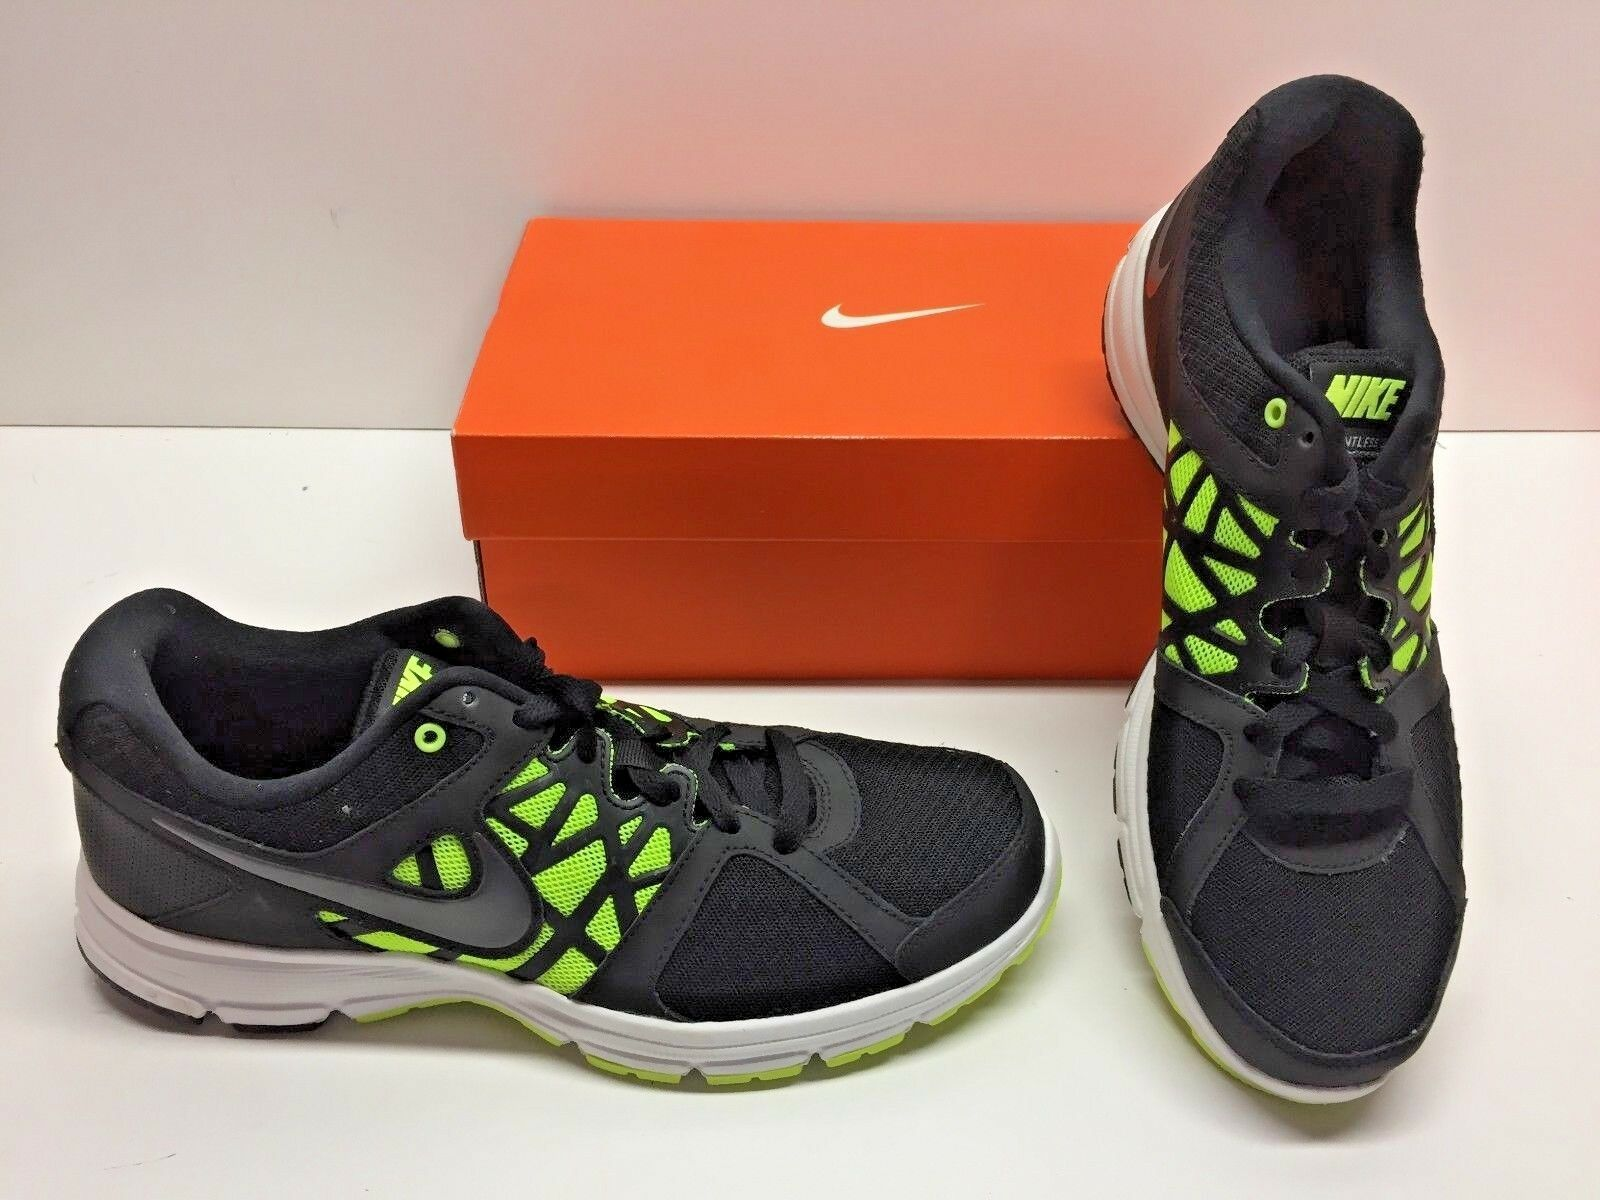 Nike Training Relentless esecuzione 2 In esecuzione Relentless Cross Training Nike Nero verde   aa82fd